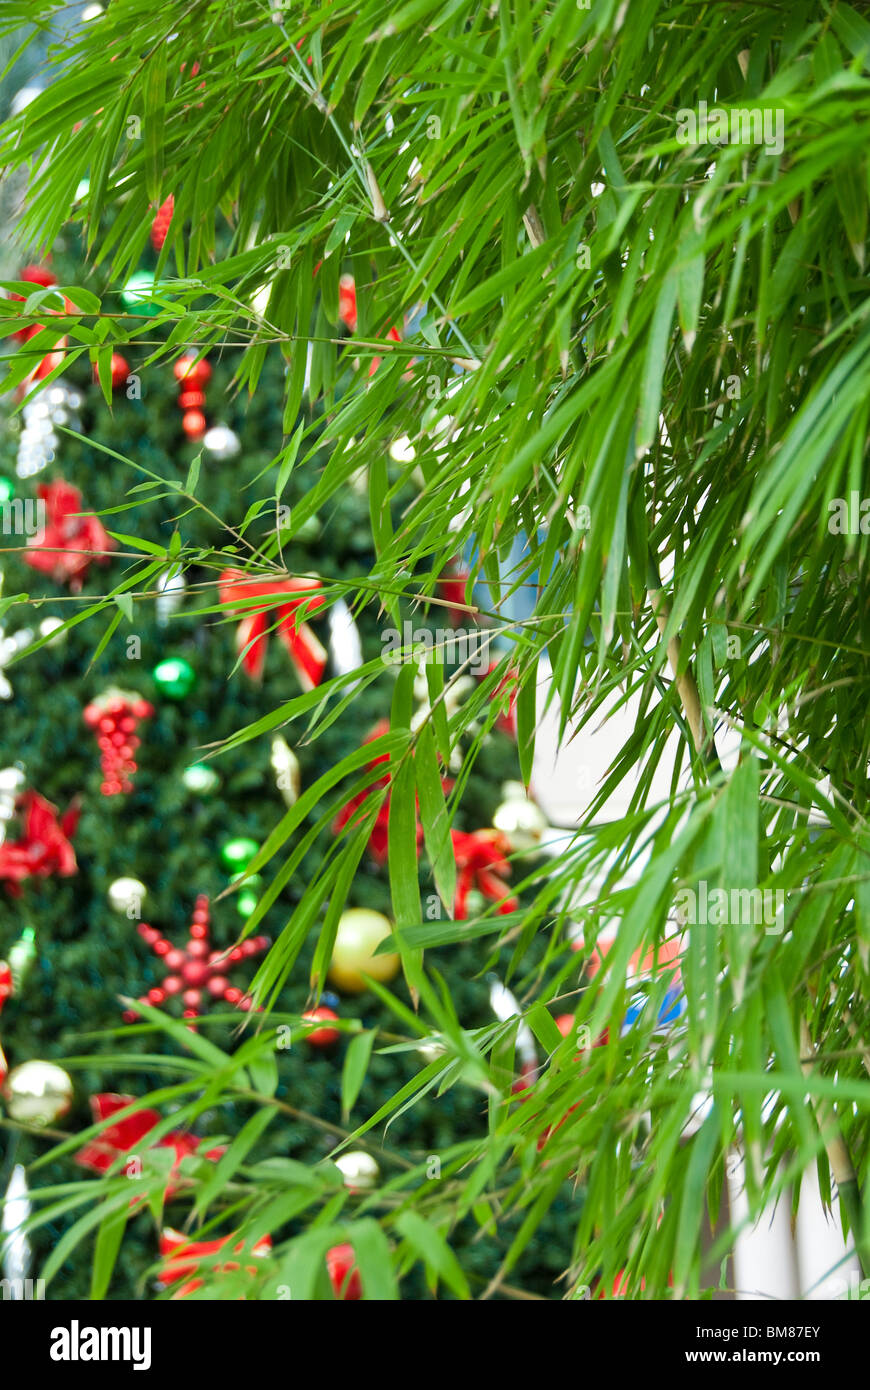 Exterior close-up of Christmas tree ornaments and bamboo landscaping on Las Olas Boulevard in Fort Lauderdale, Florida, - Stock Image